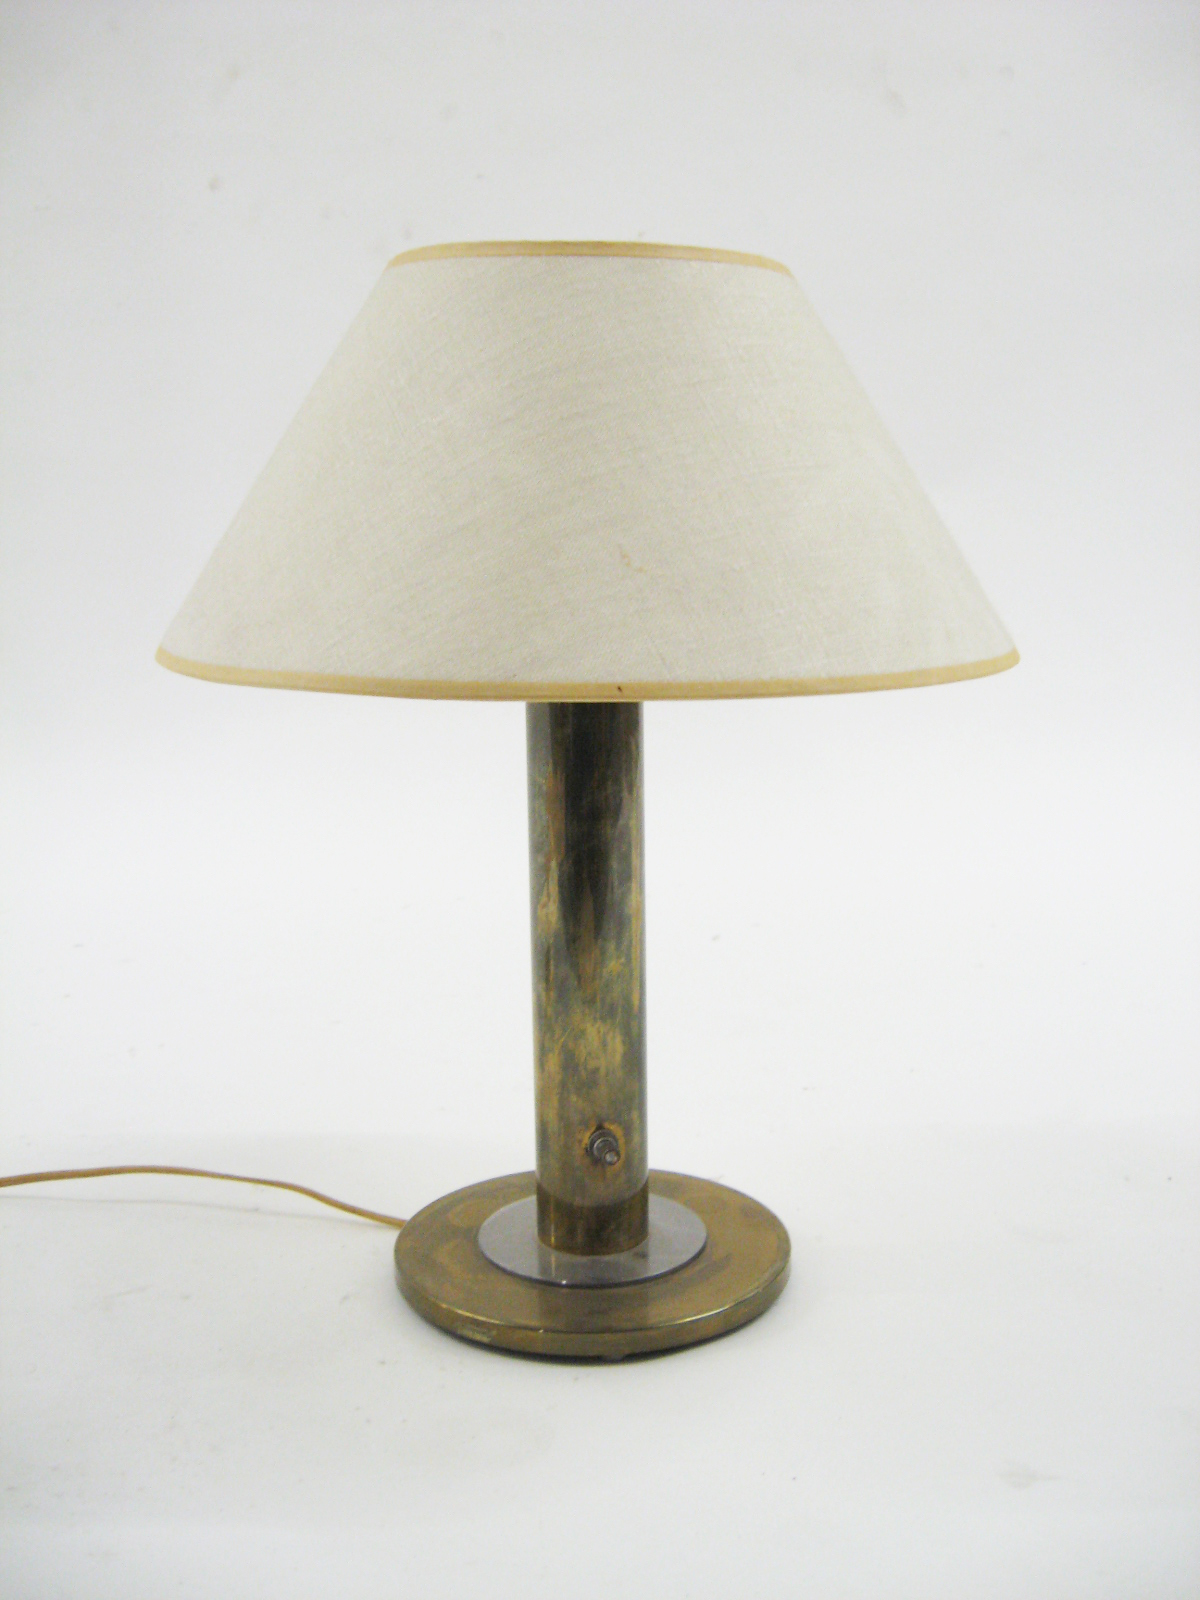 Nessen Brass Table Lamp